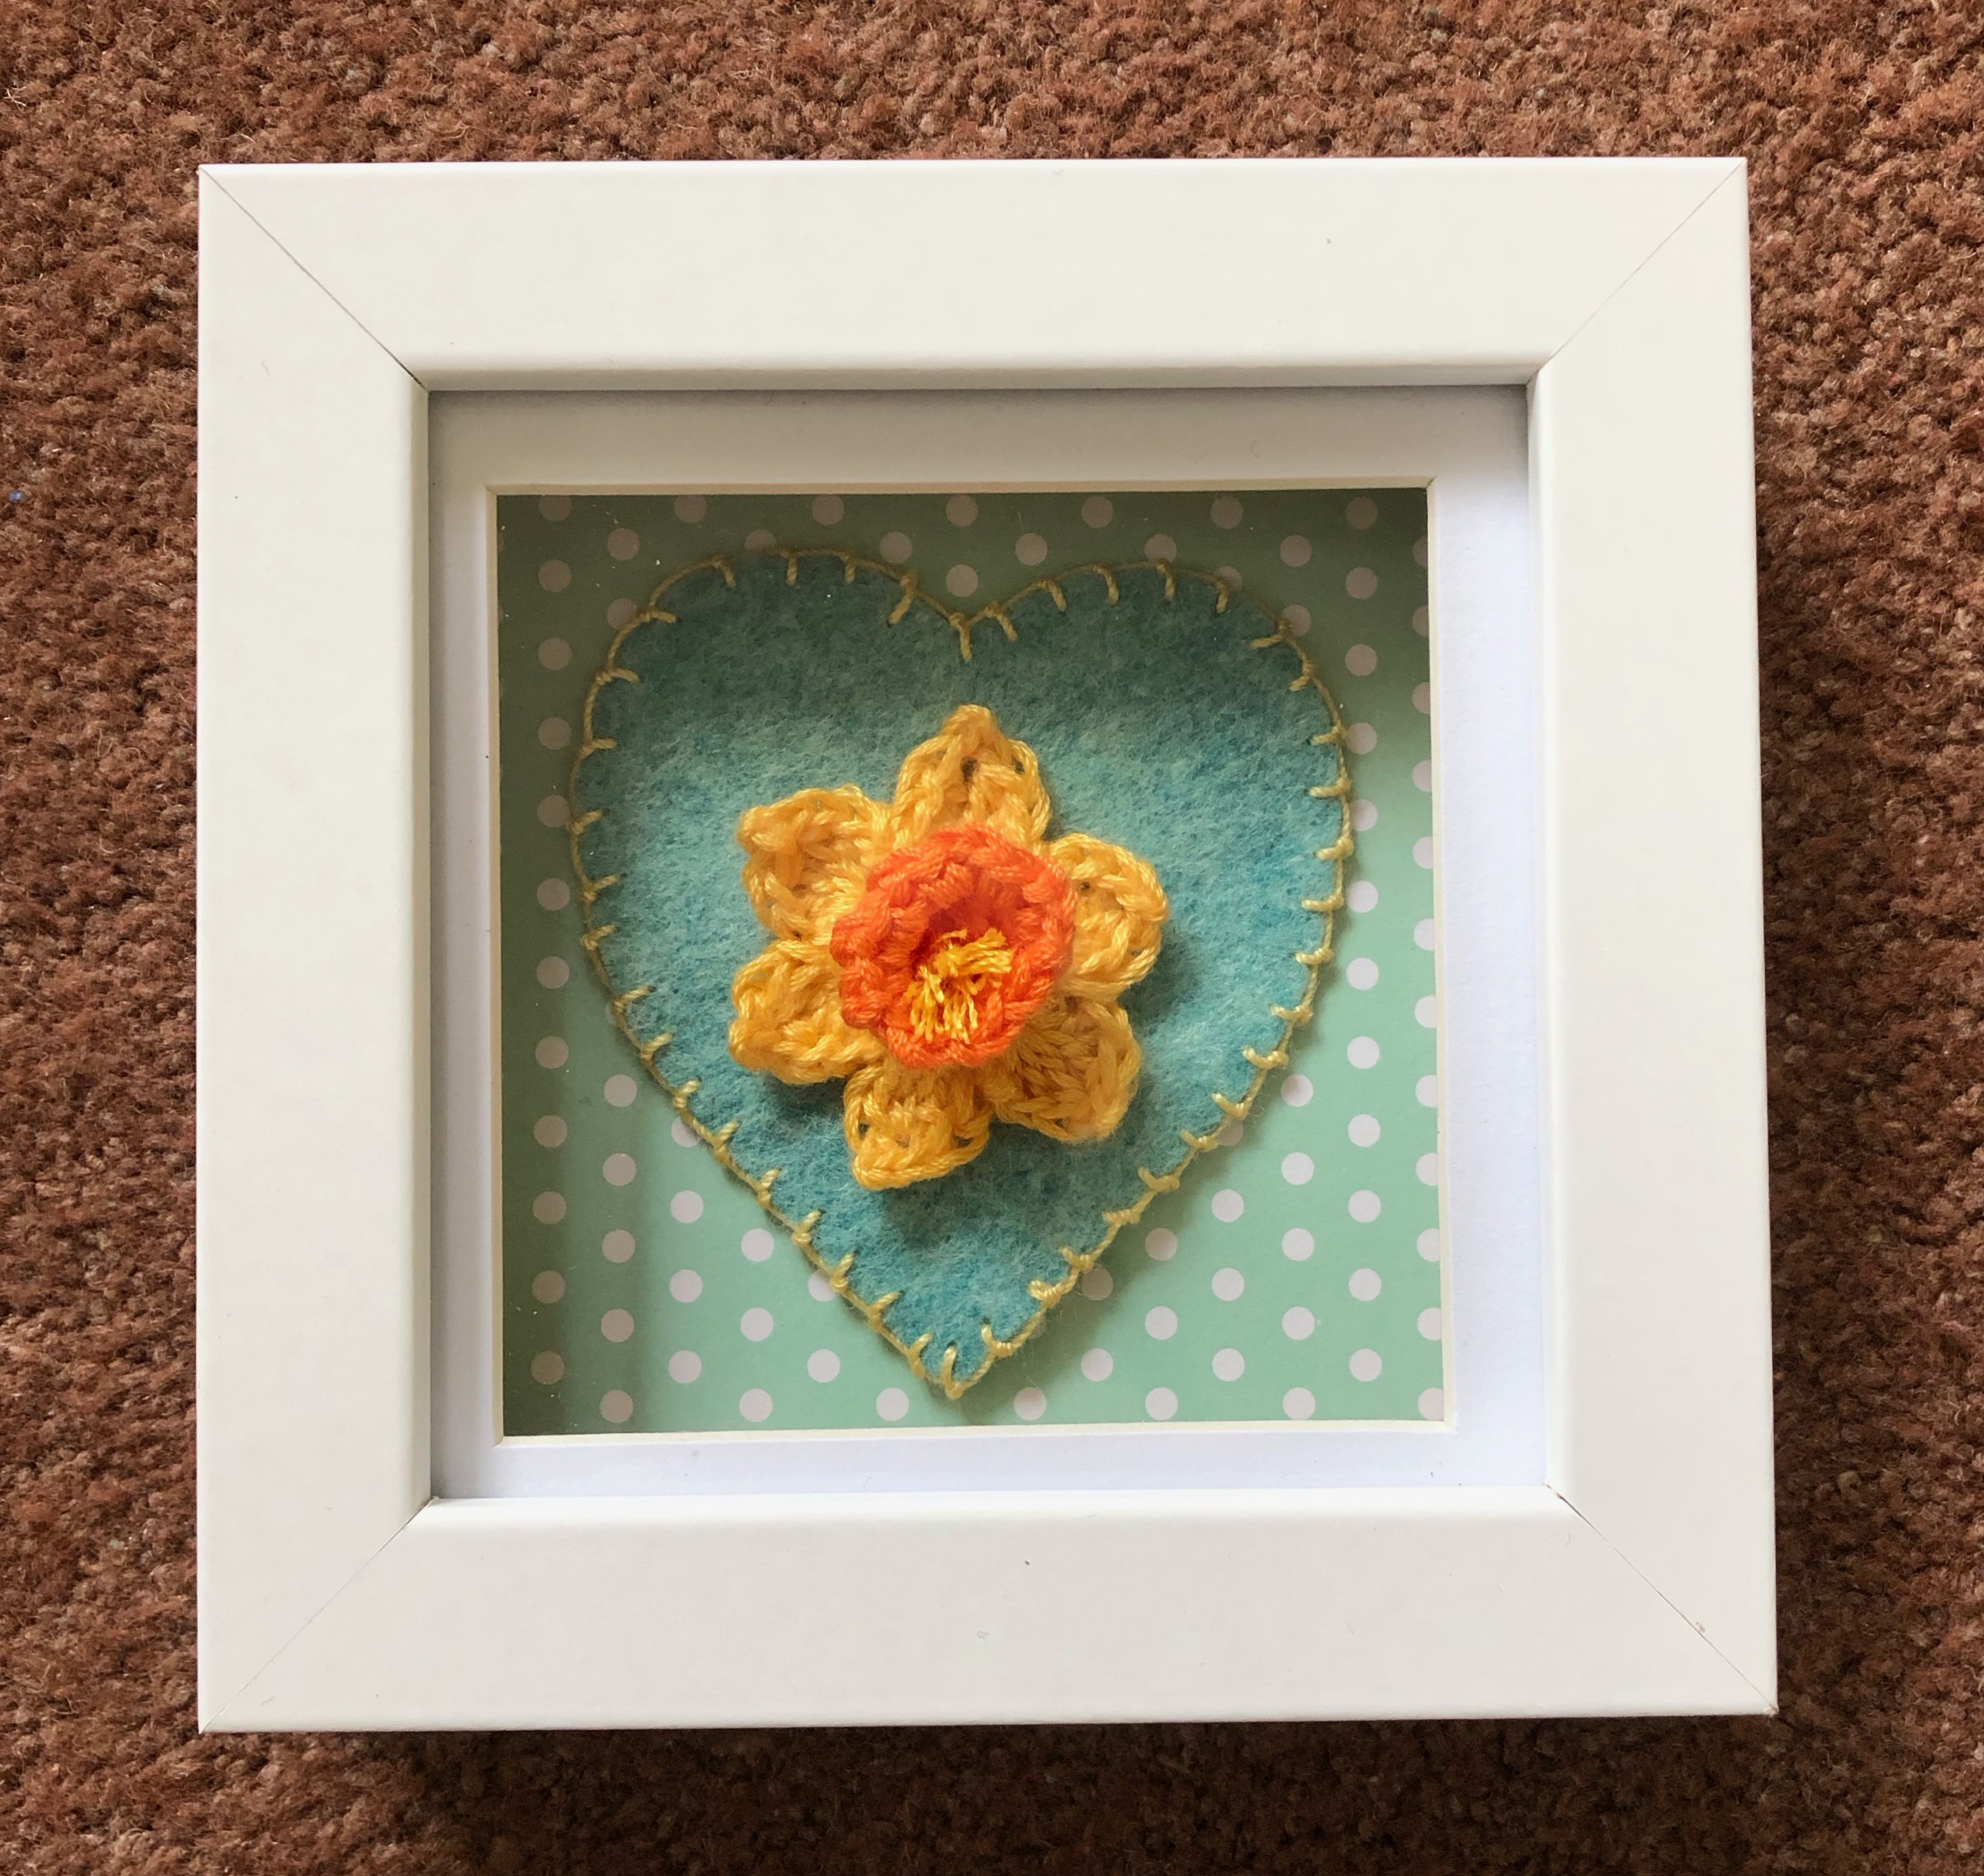 A small white wooden framed picture with a single handmade, crocheted yellow and orange daffodil on top of a hand stitched green and yellow felt heart on a green and white spotty background.